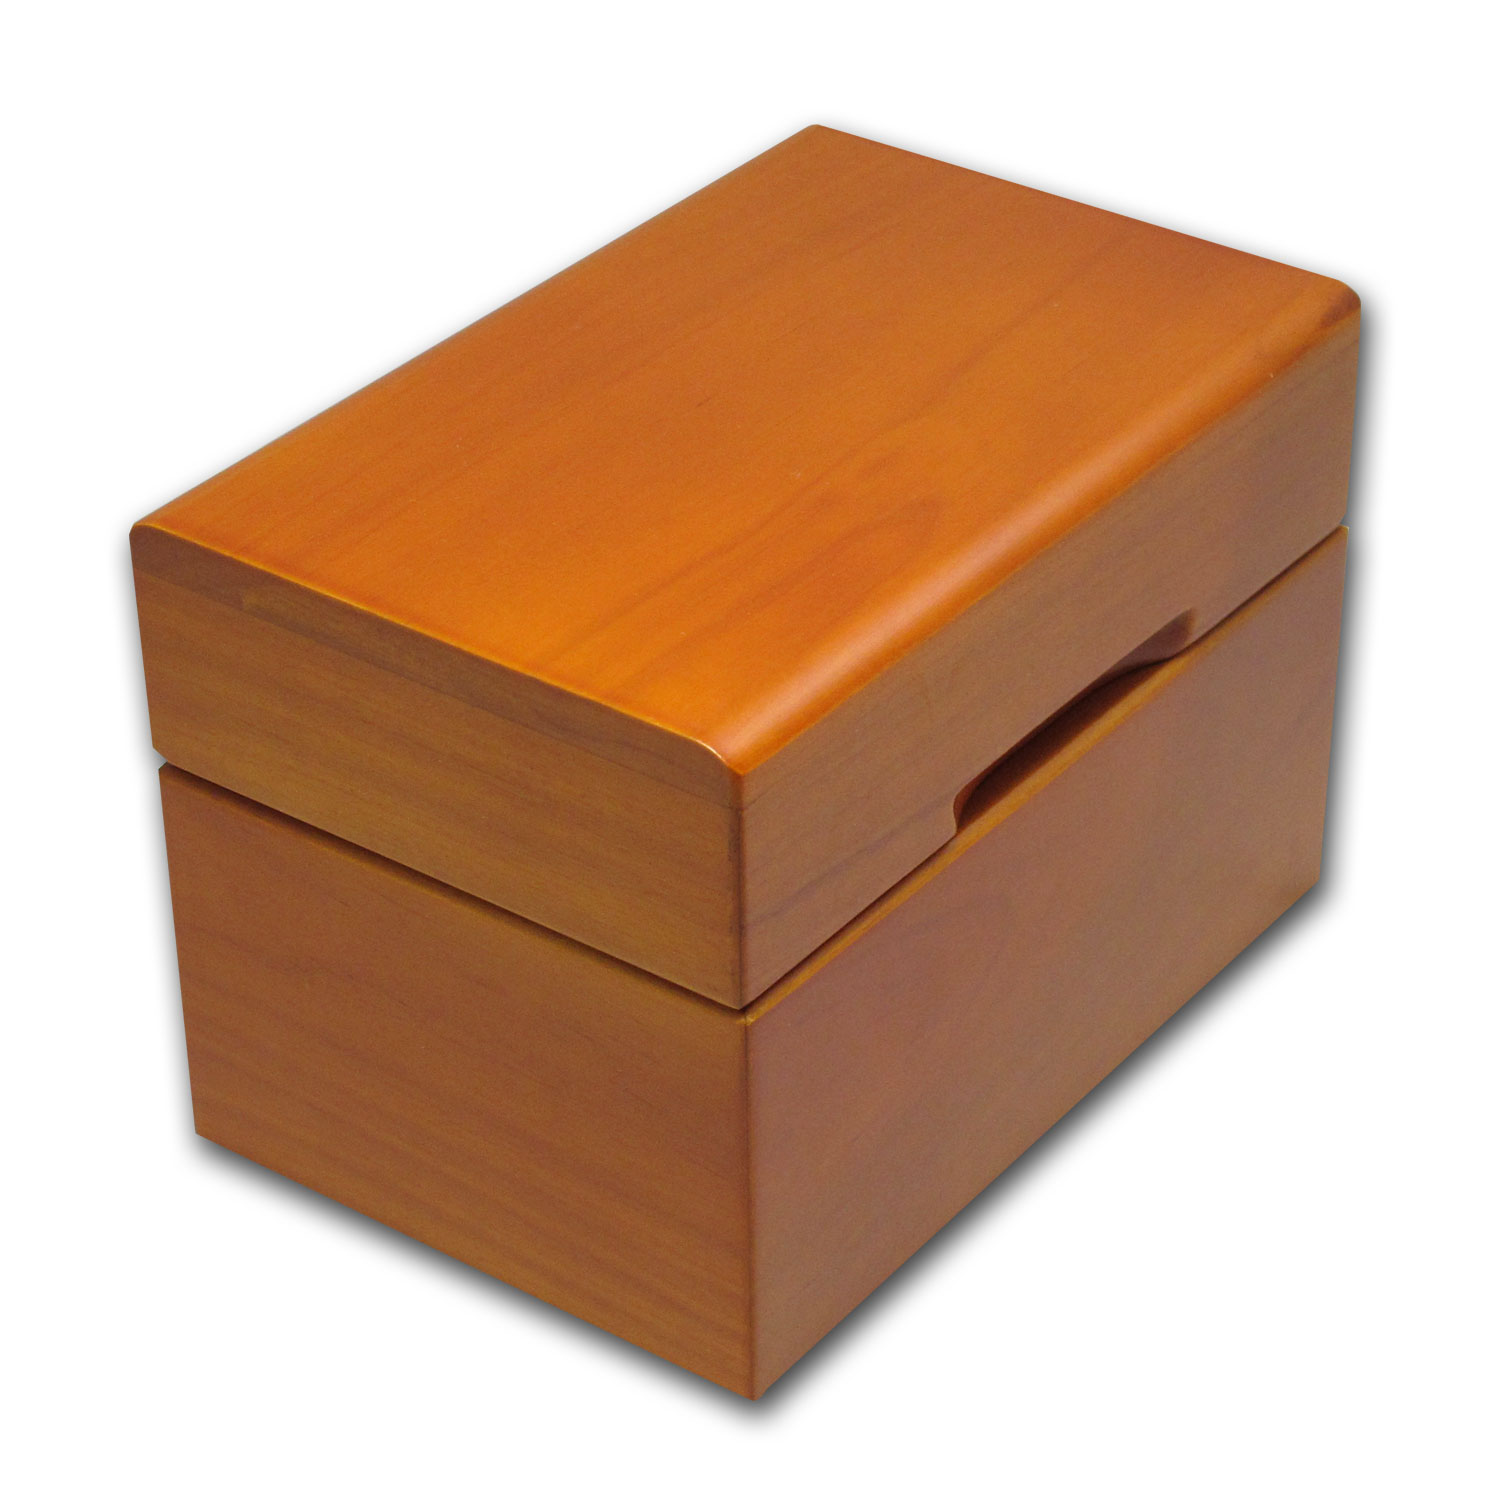 Wooden Slab Storage Box - Ten Slab